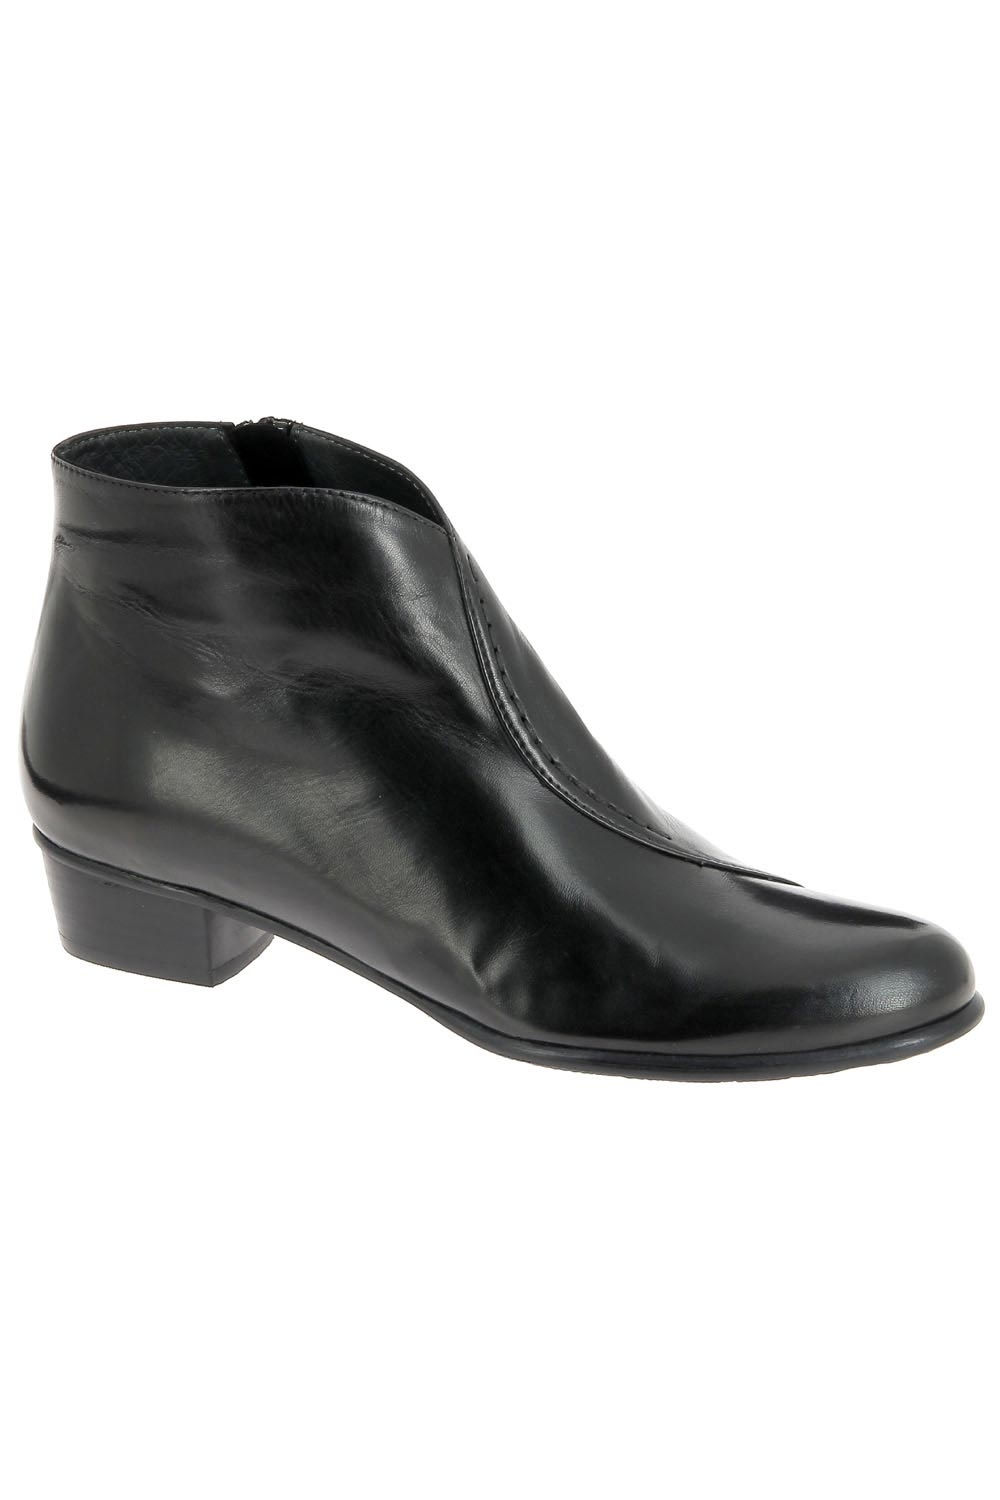 de ville de Bottines everybody noir Bottines noir ville de ville everybody Bottines NwvOm08n